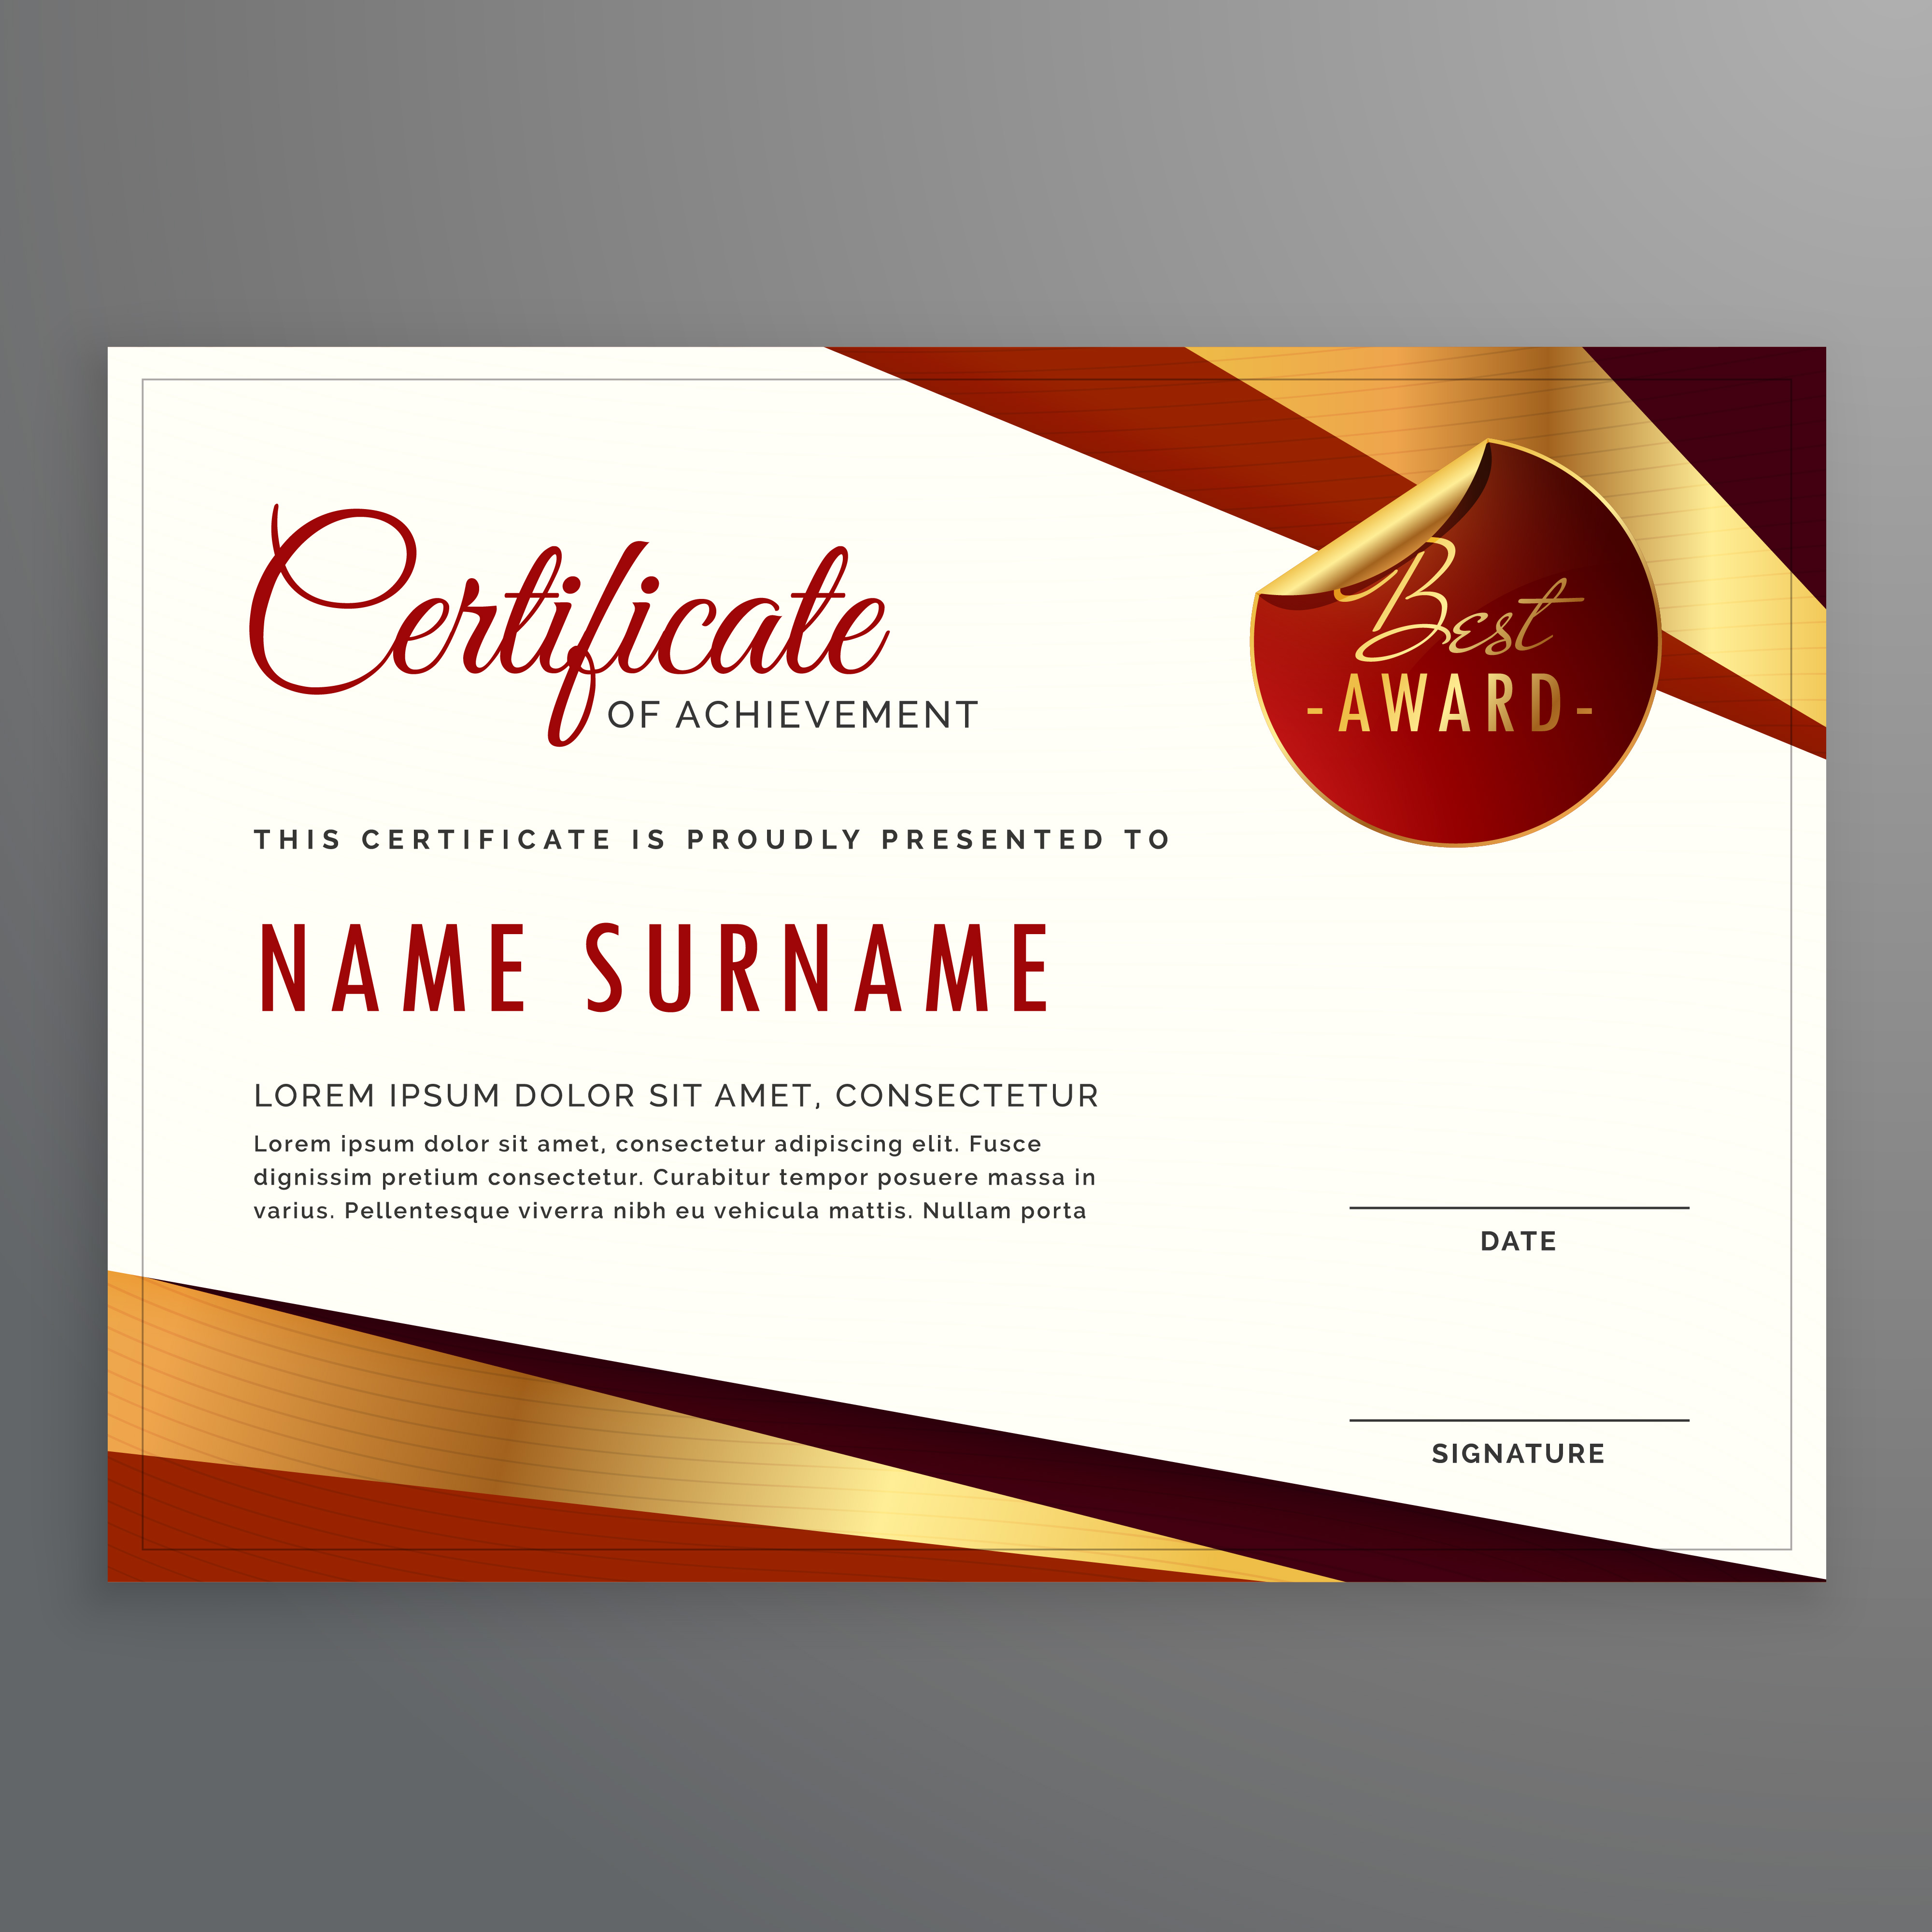 Elegant Marriage Certificate Template Golden Edition: Luxury Certificate Template Design With Elegant Golden And